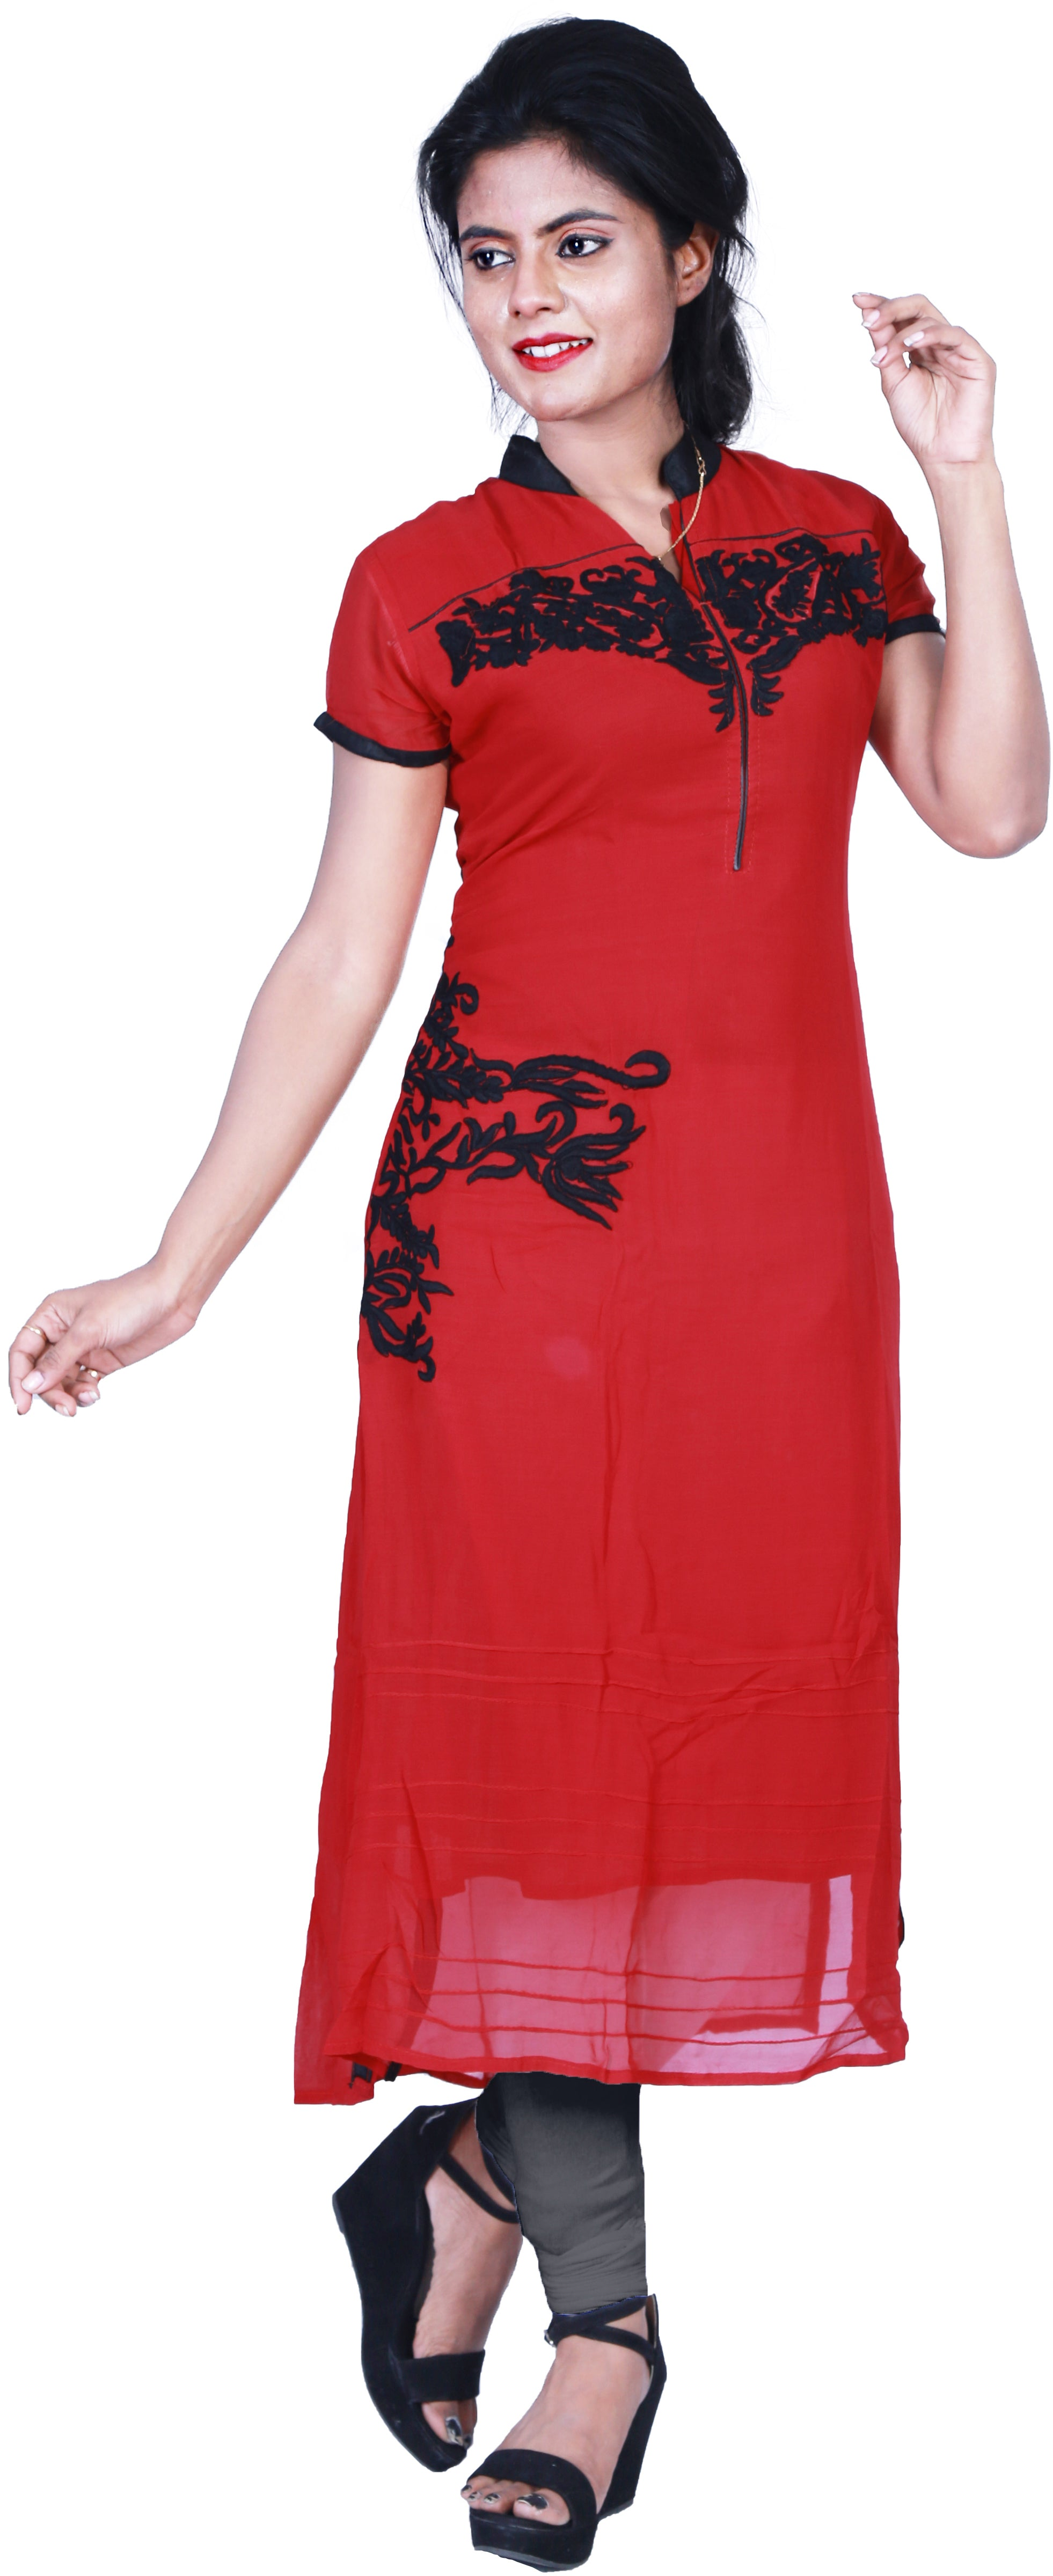 SMSAREE Red Designer Casual Partywear Georgette Viscos Thread Hand Embroidery Work Stylish Women Kurti Kurta With Free Matching Leggings GK929